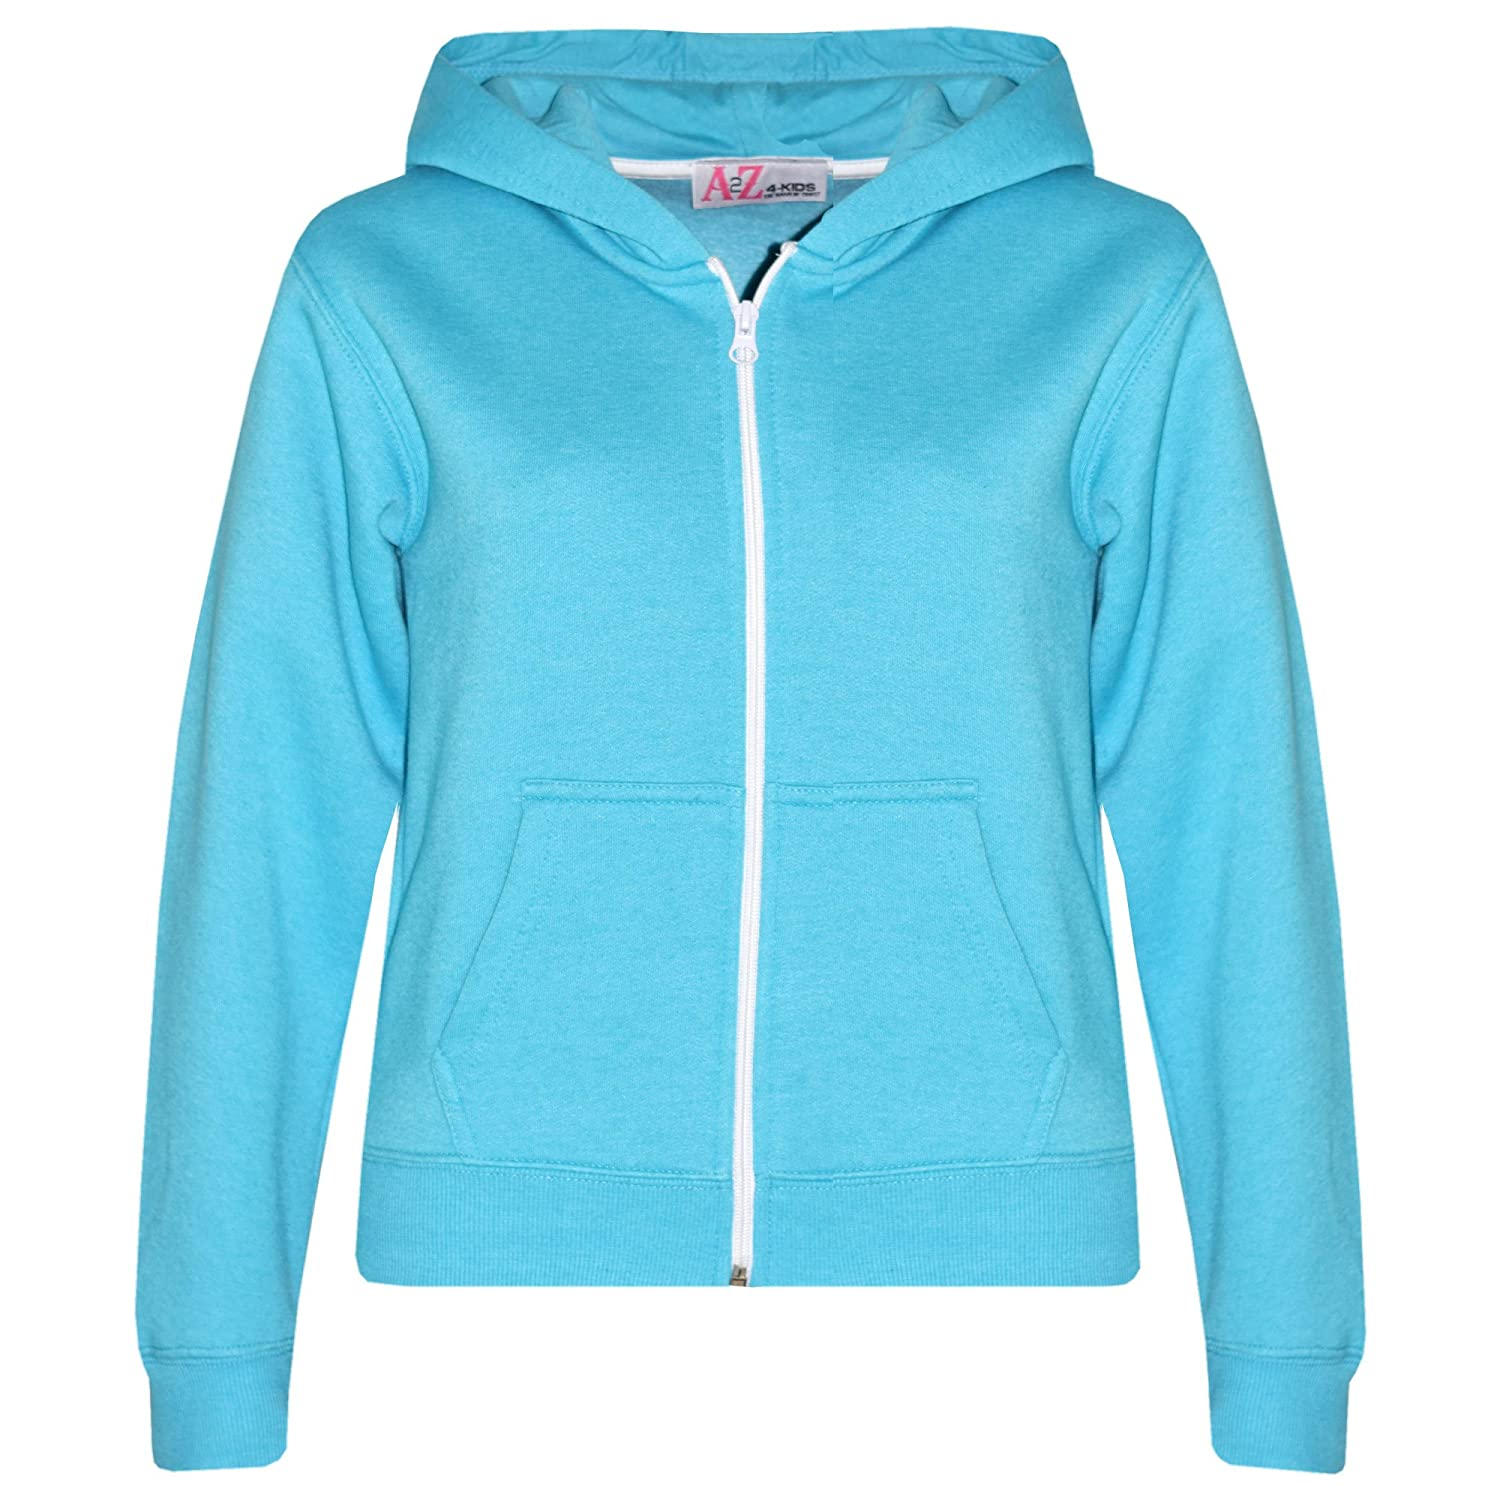 bf14716a0 A2Z 4 Kids Kids Girls And Boys Unisex Plain Fleece Hoodie Zipper. A2Z 4  Kids Is Our Trade Mark, It Is Exclusive To Our Amazon Shop Only.